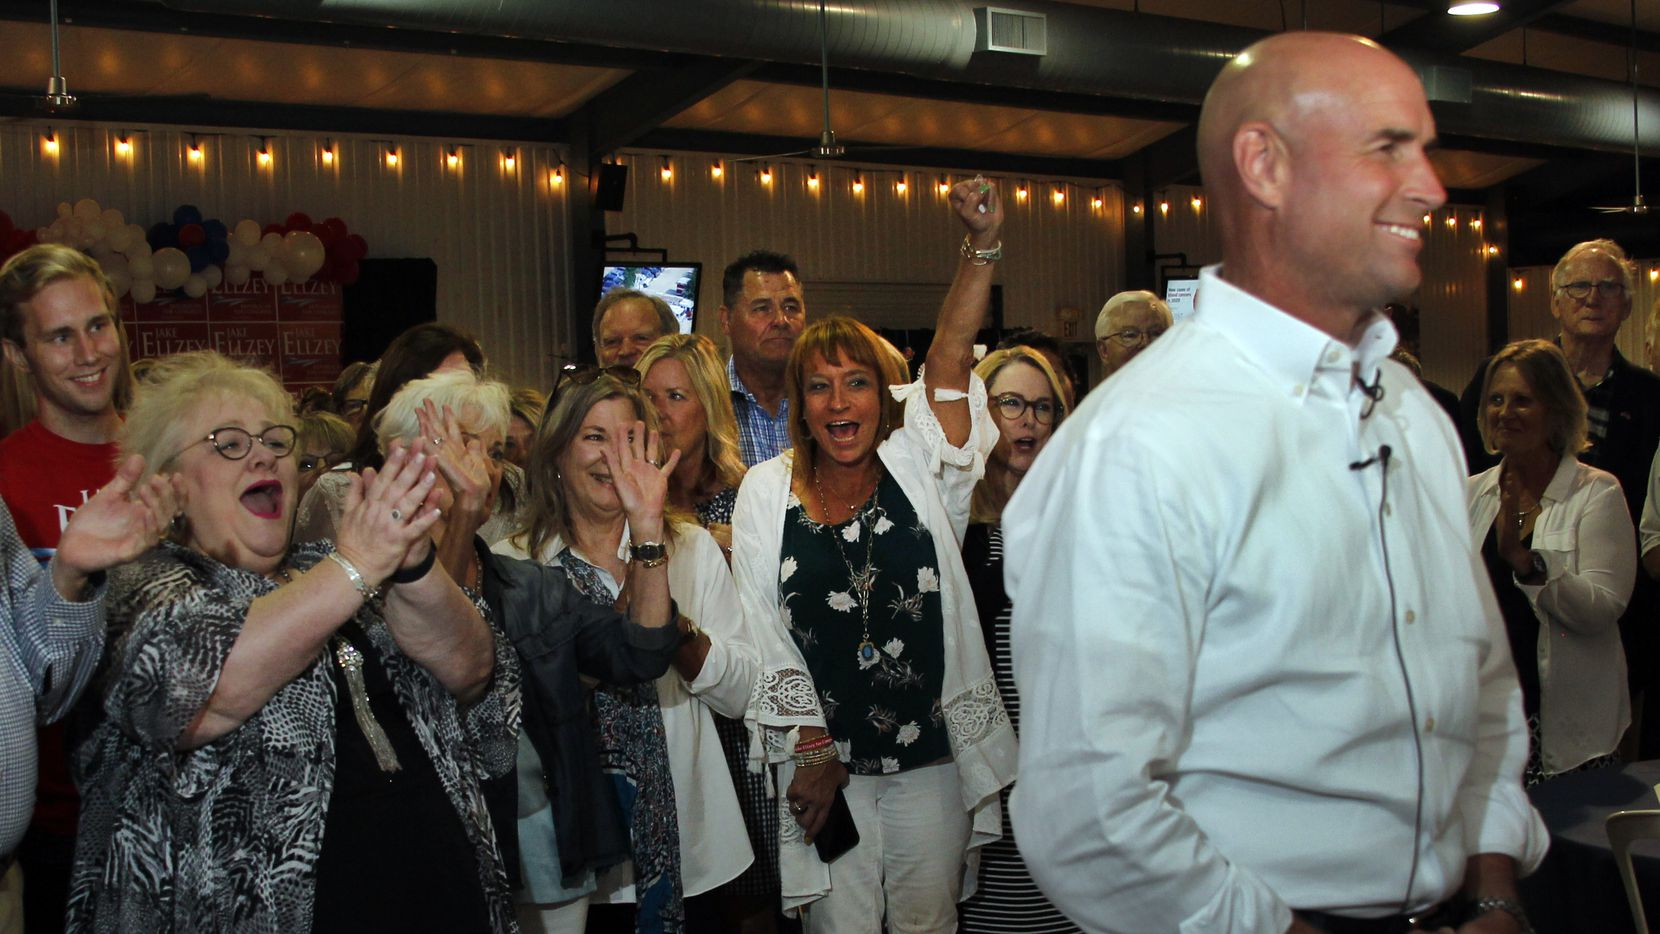 State Rep. Jake Ellzey conducted live television interviews at the Texas Motorplex in Ennis as his supporters cheered after he won his runoff election against Susan Wright on Tuesday.